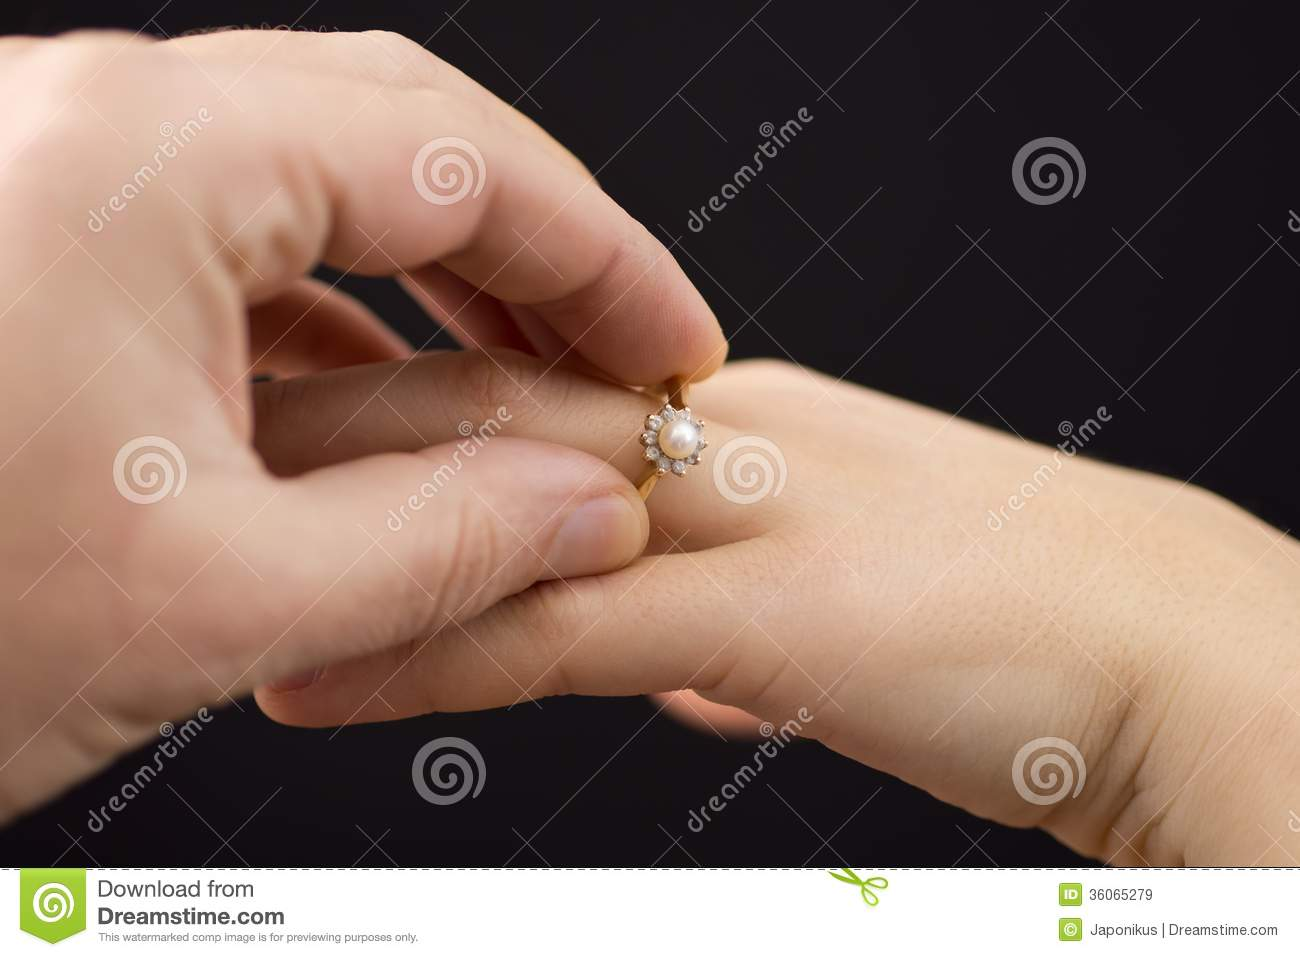 Putting A Ring On Girl\'s Hand Stock Image - Image: 36065279